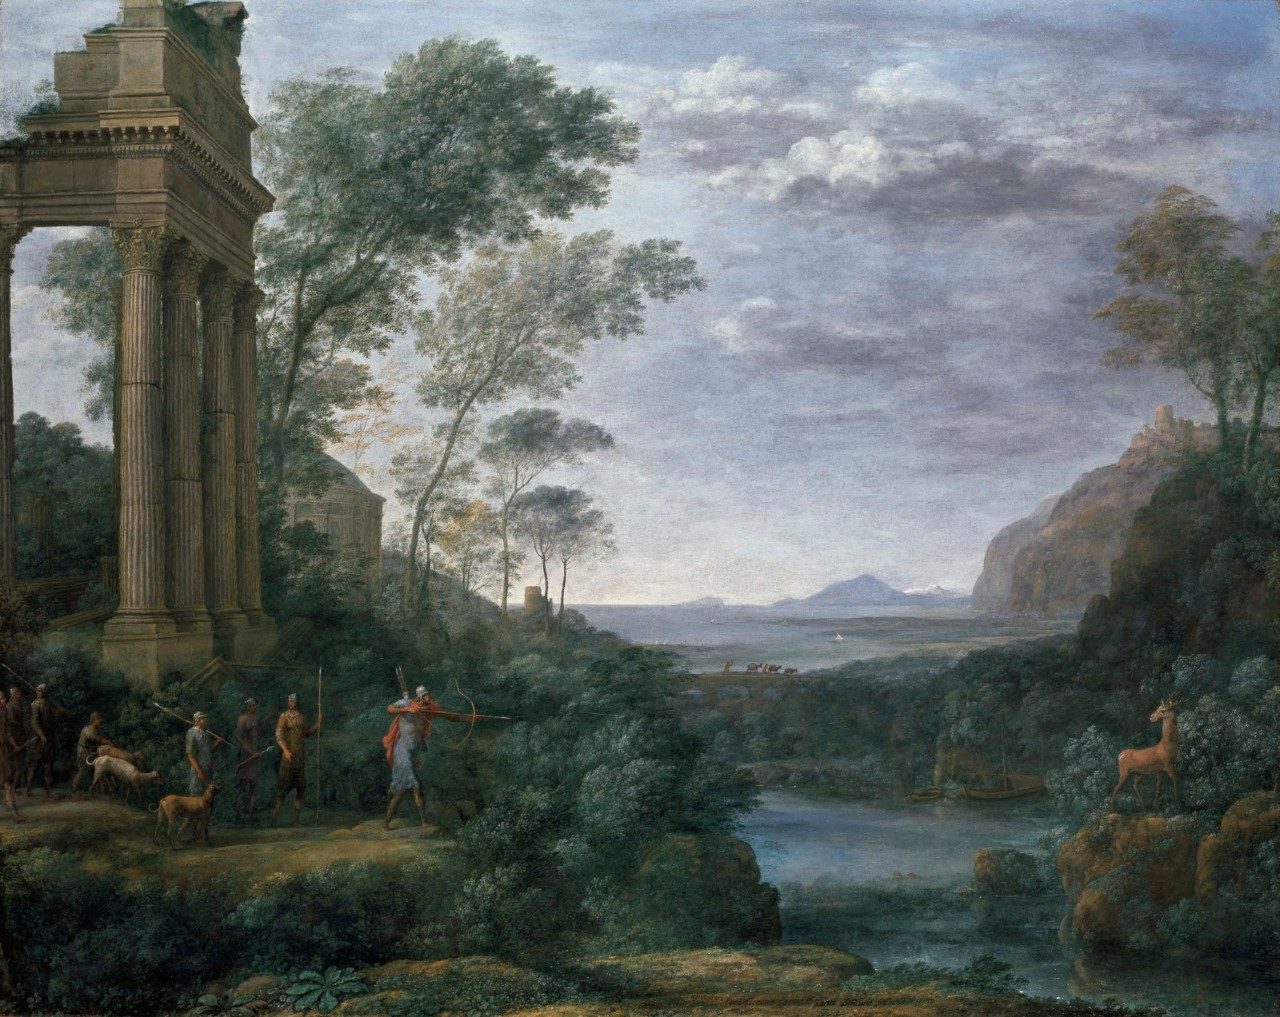 Painting by Claude Lorrain showing Ascanius shooting the stag of Sylvia, a landscpe paiting whowing a group of hunters on one side of a river and the stag on the other.